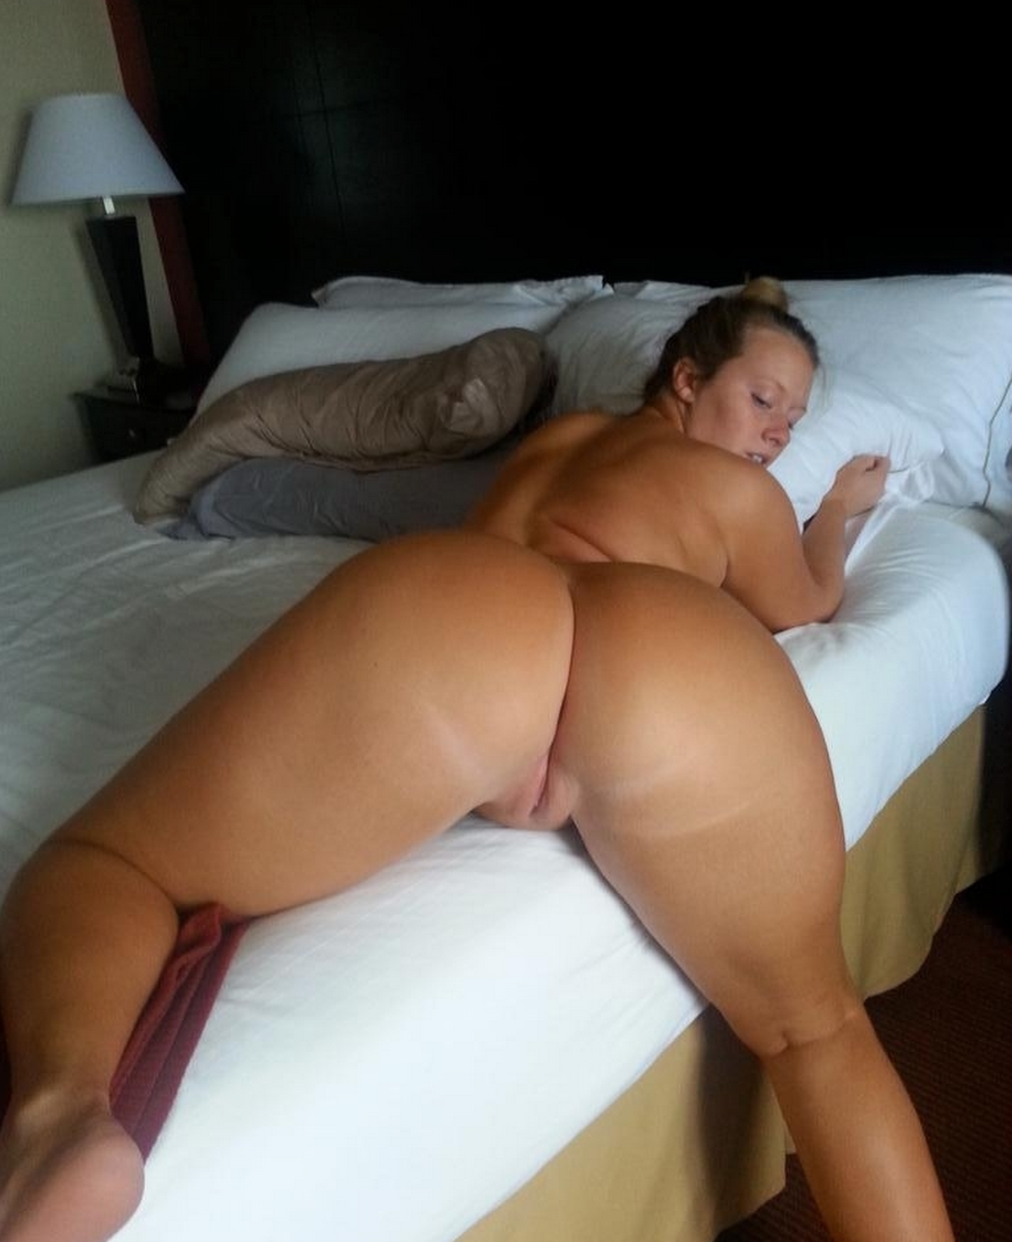 Phat ass girlfriend amature homemade #3